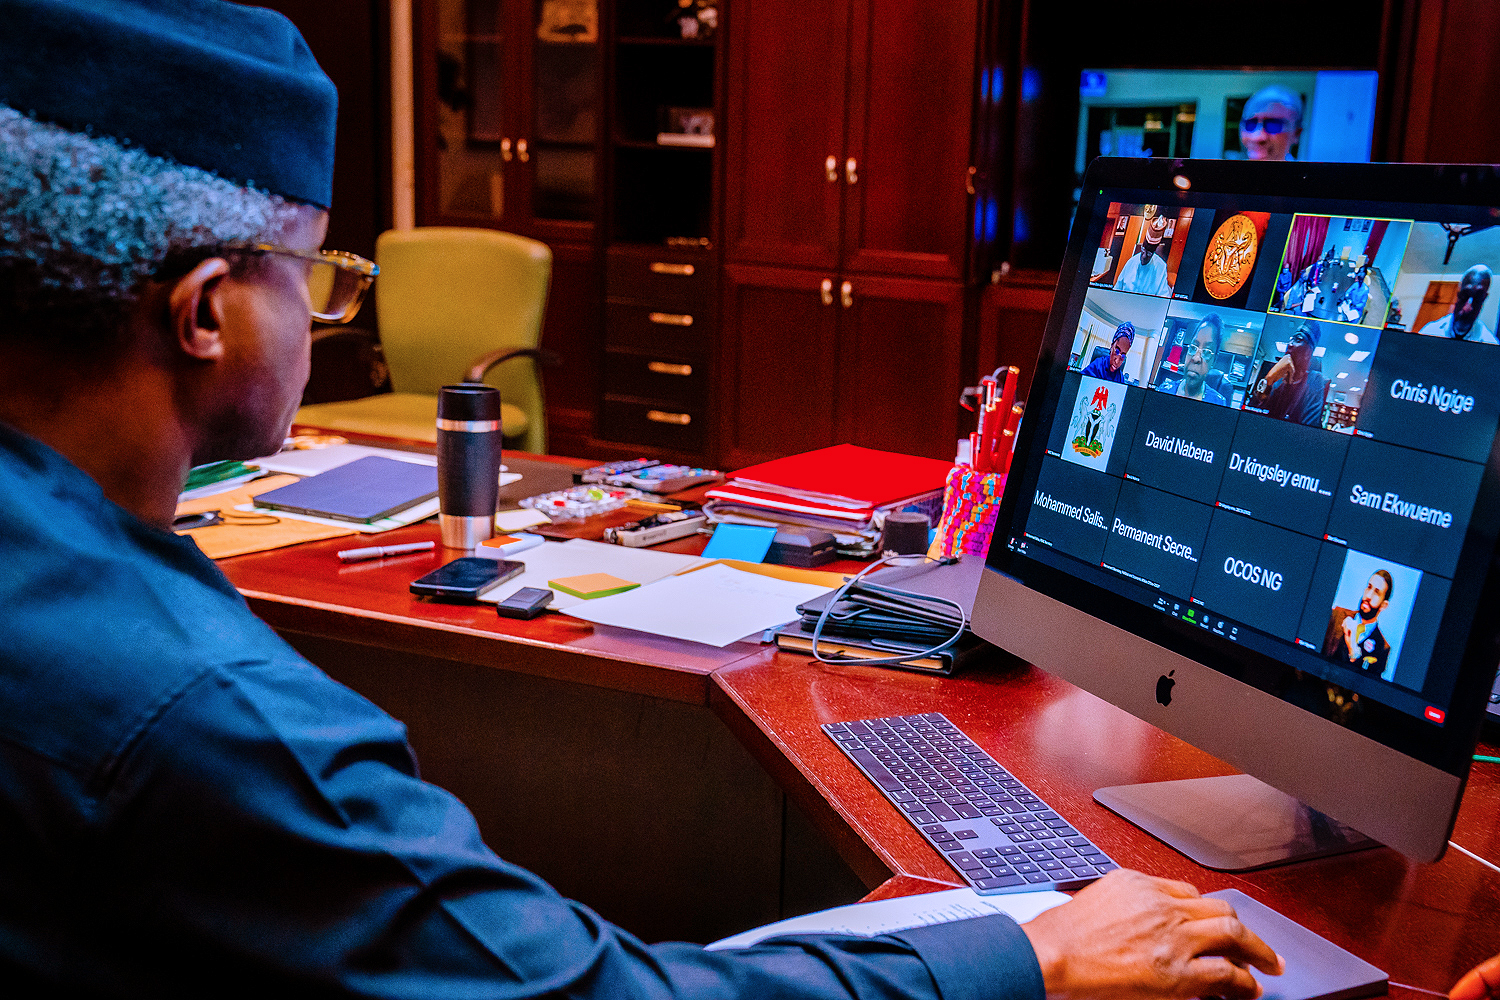 VP Osinbajo Chairs The Poverty Reduction And Growth Strategy Committee Meeting On 19/08/2021